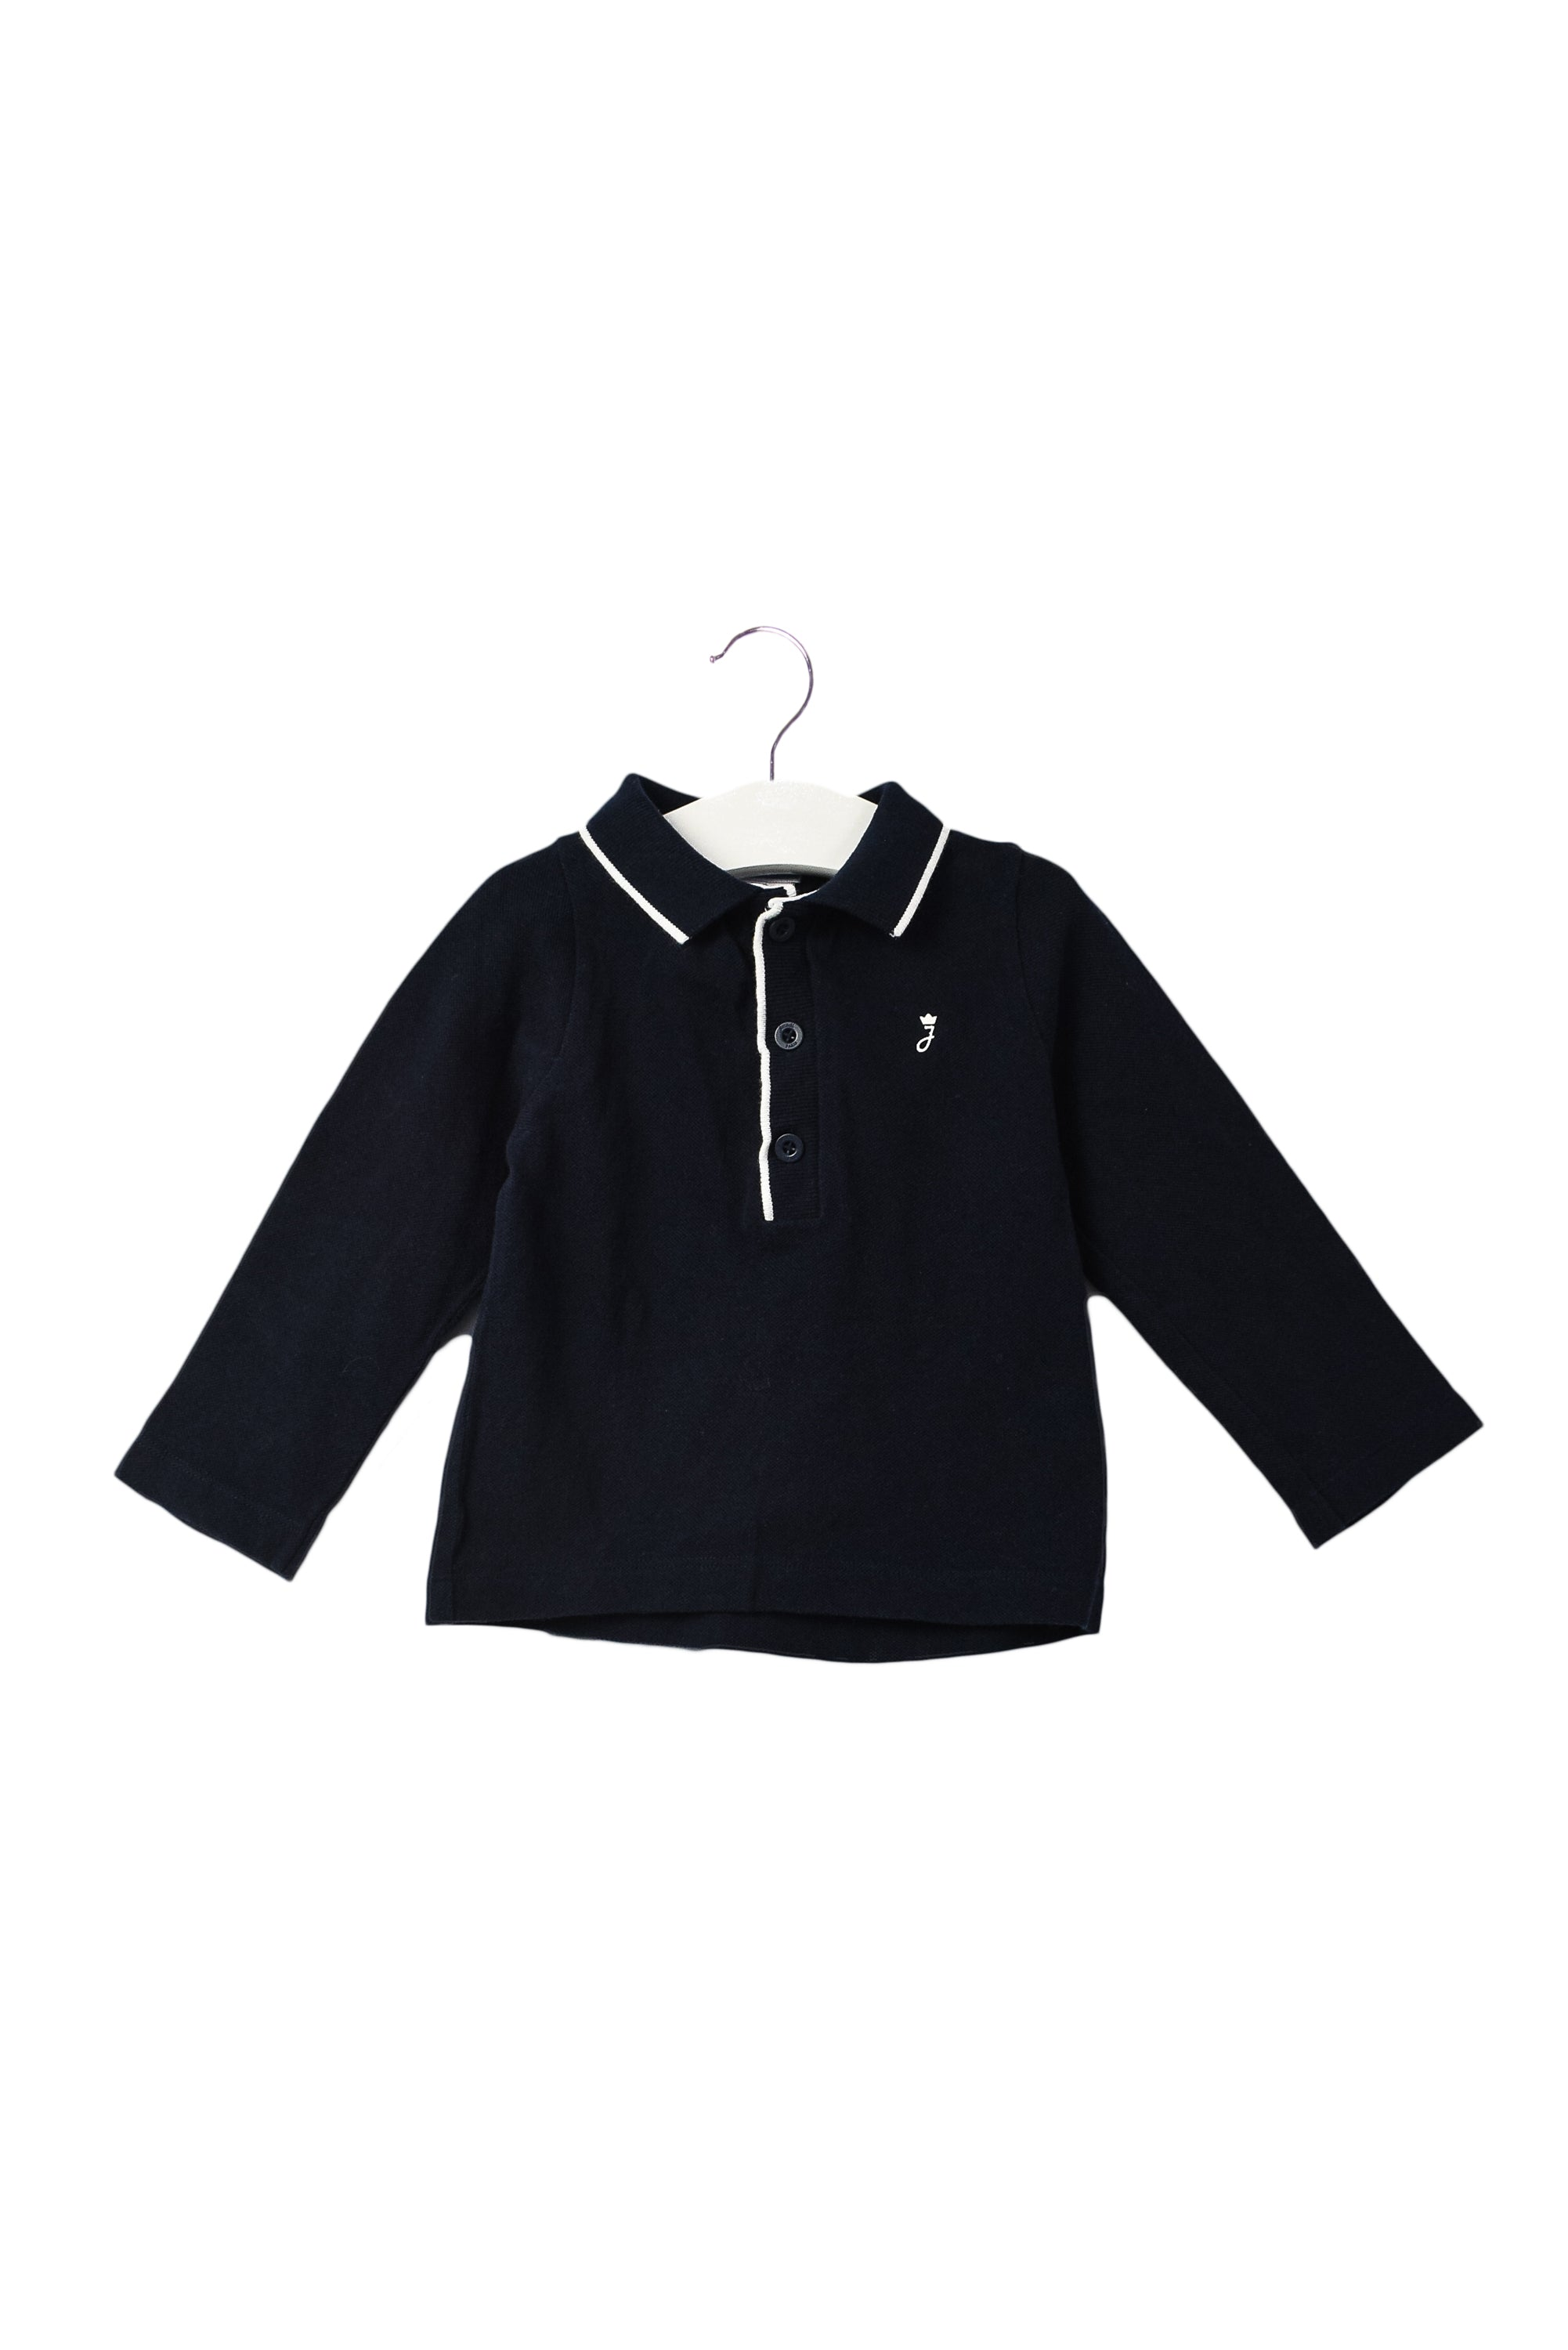 10044243 Jacadi Baby~Long Sleeve Polo 18M at Retykle